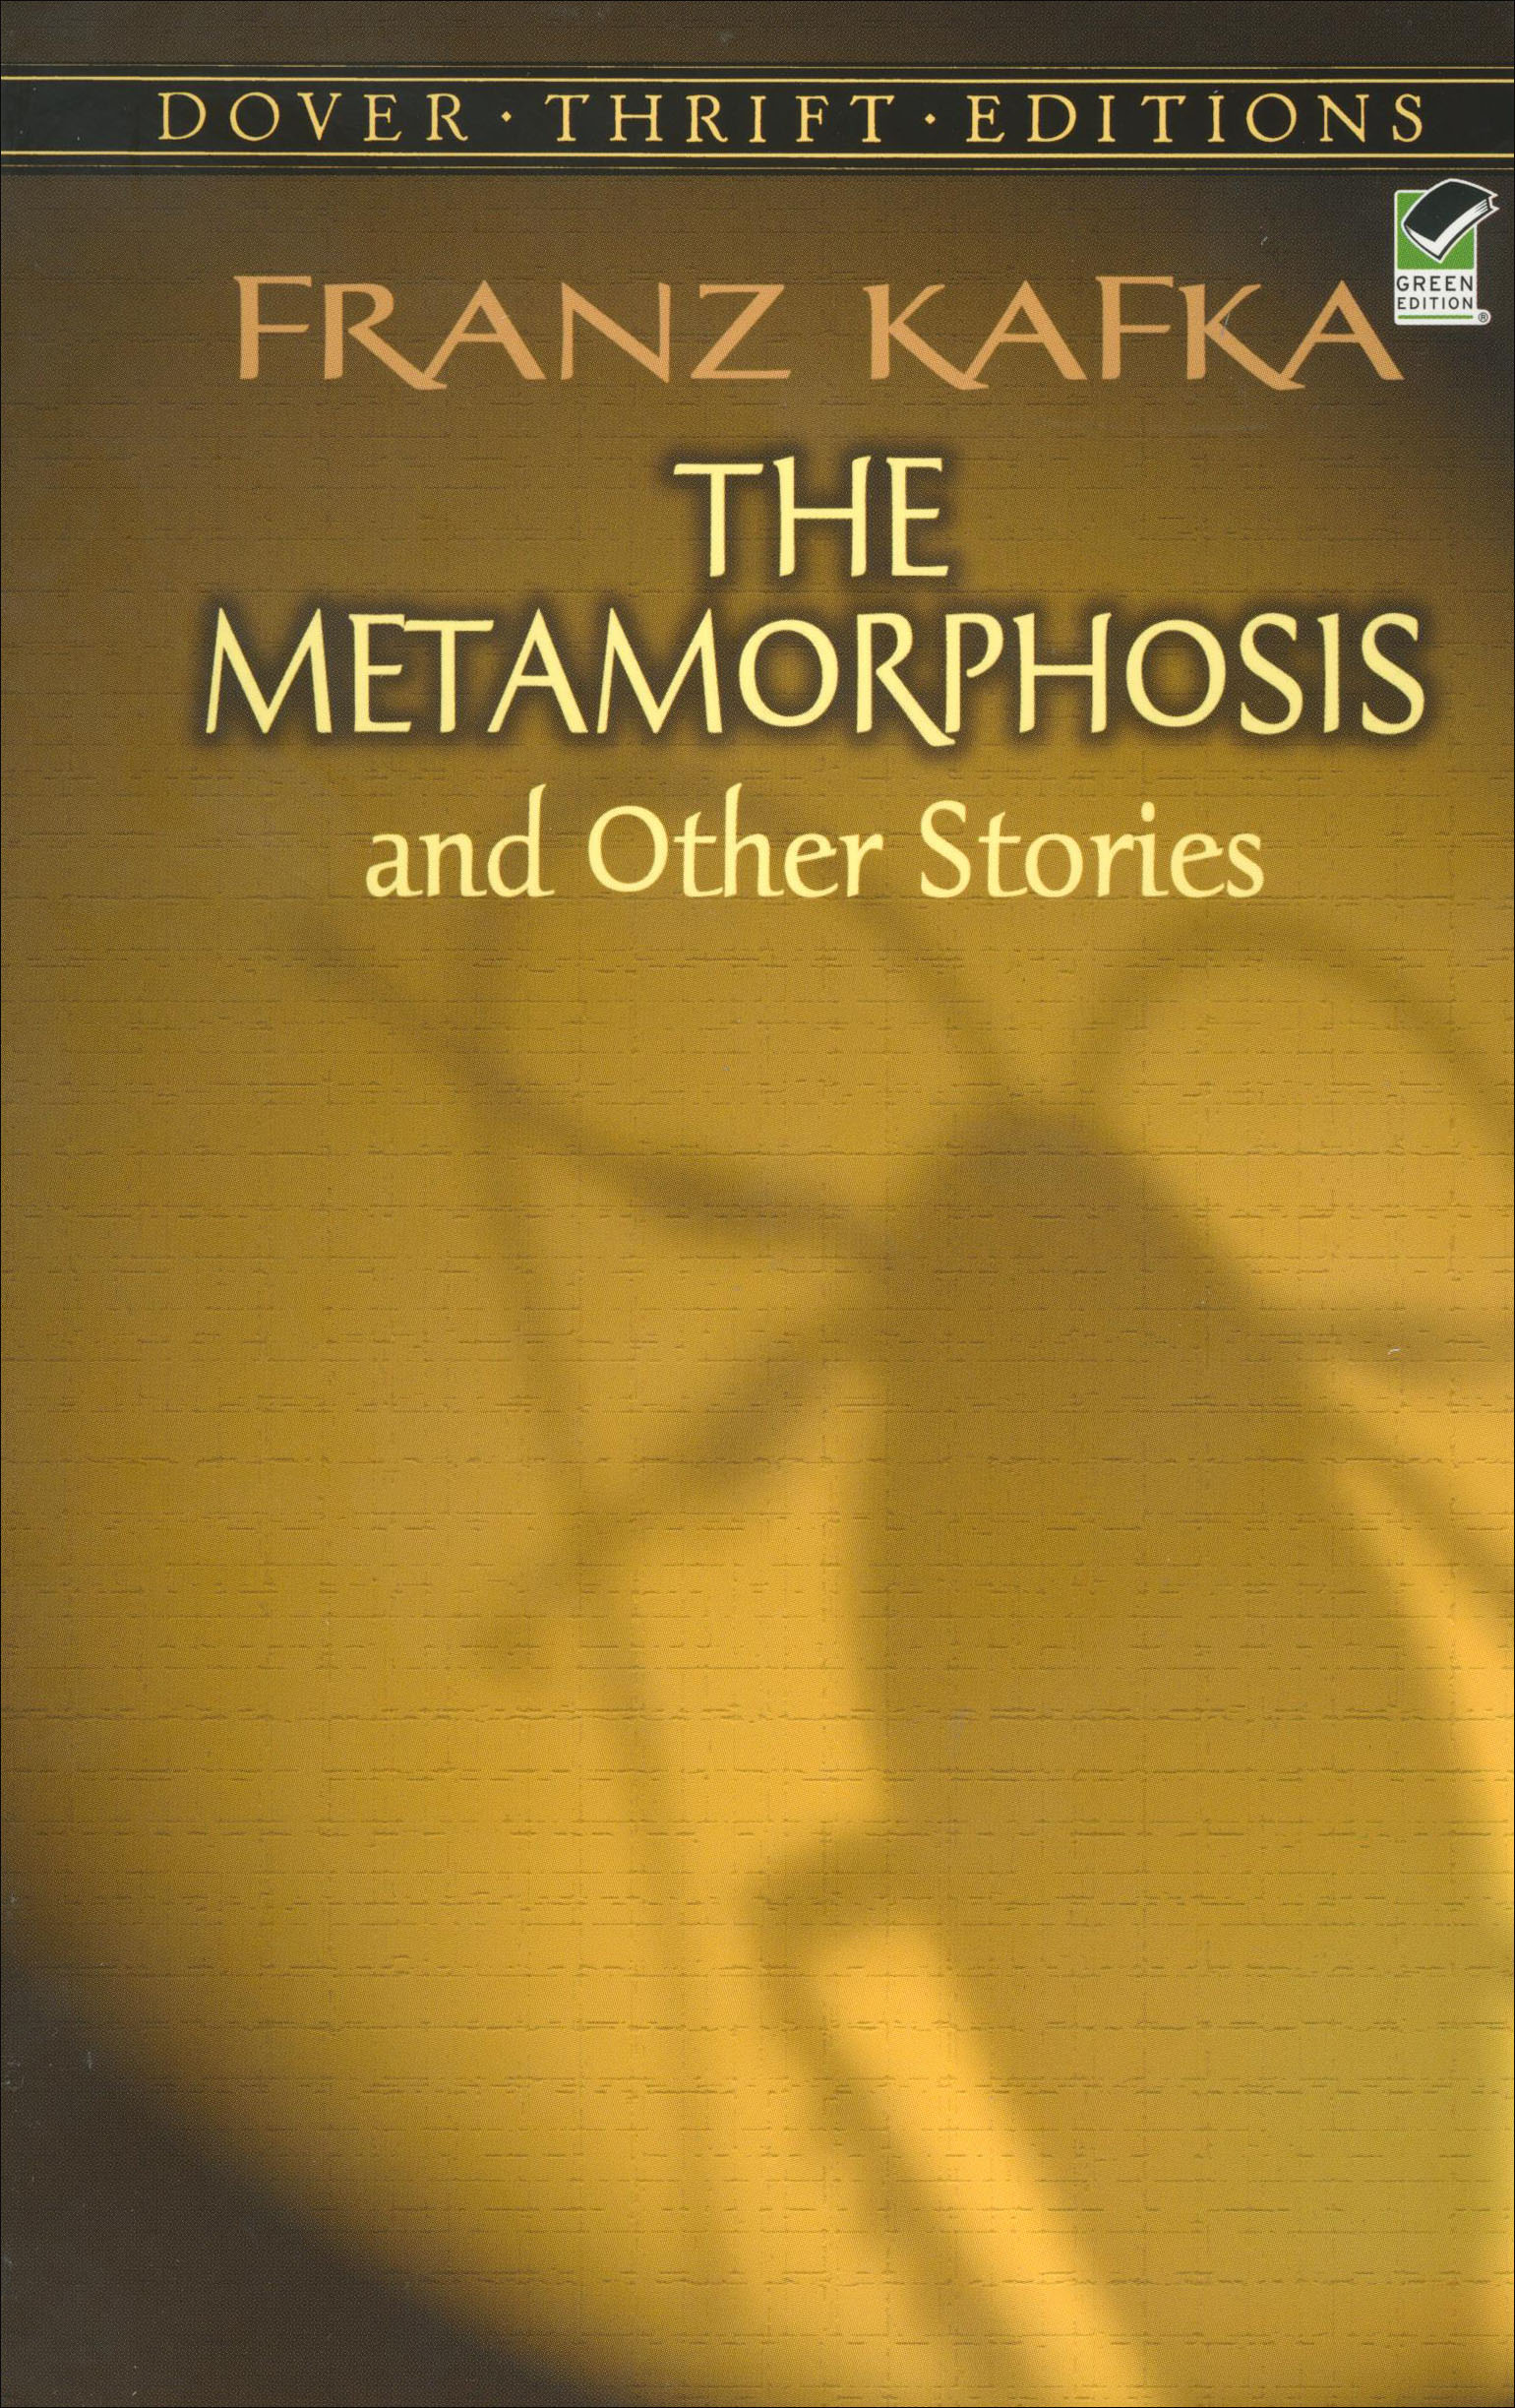 The Metemorphosis and Other Stories